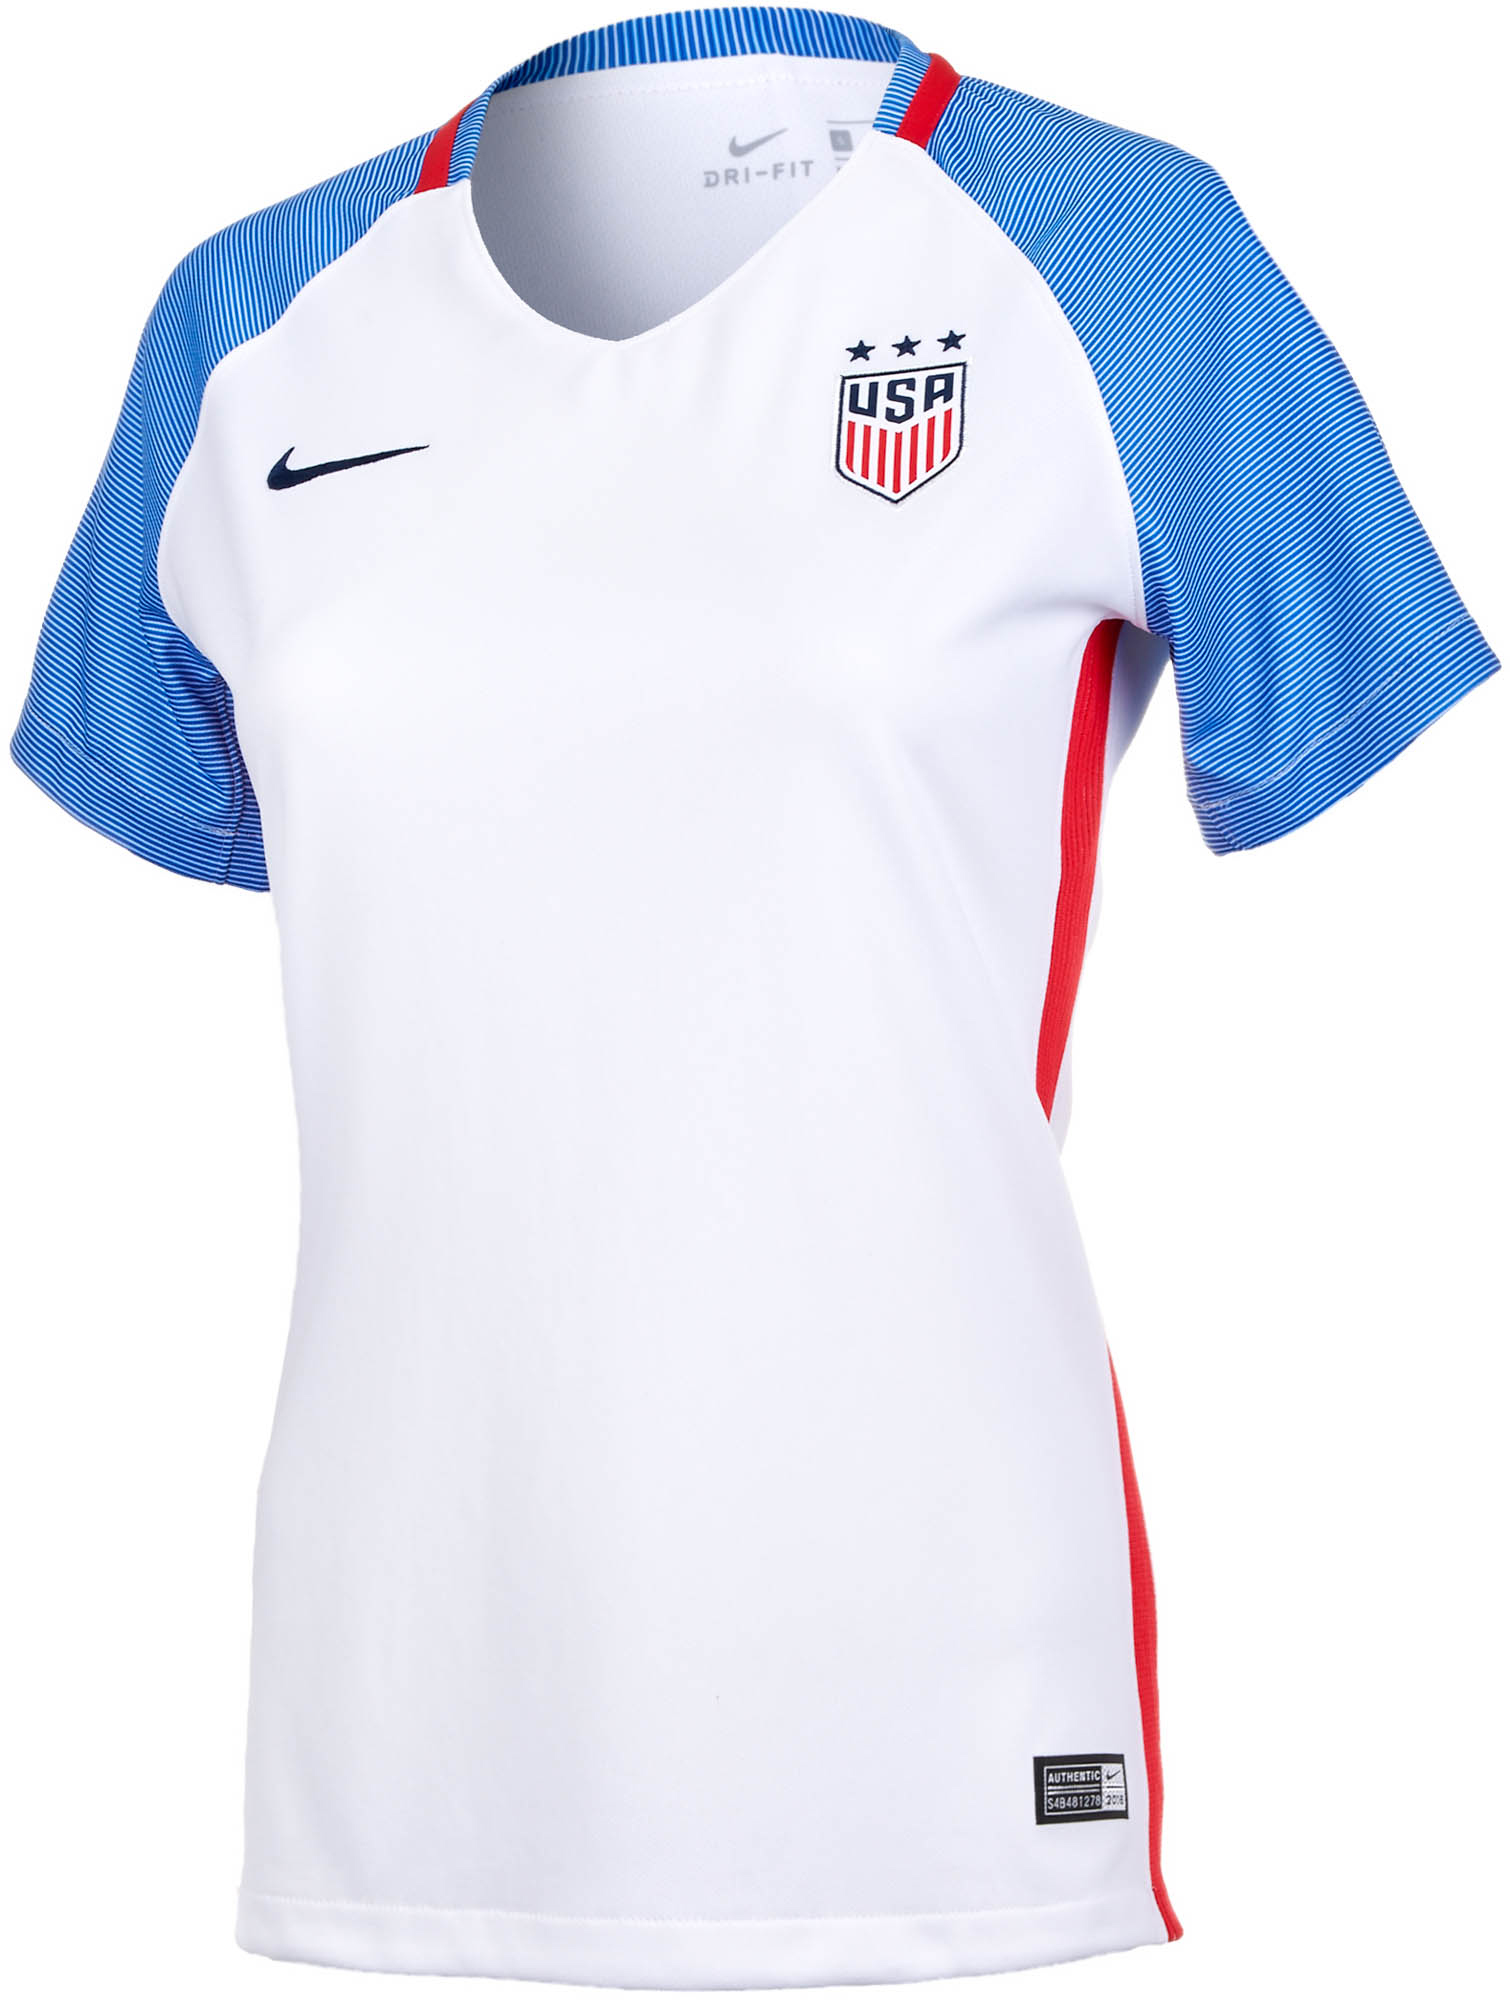 5eca005f8 2016 17 Womens Nike USA Home Jersey - Soccer Master